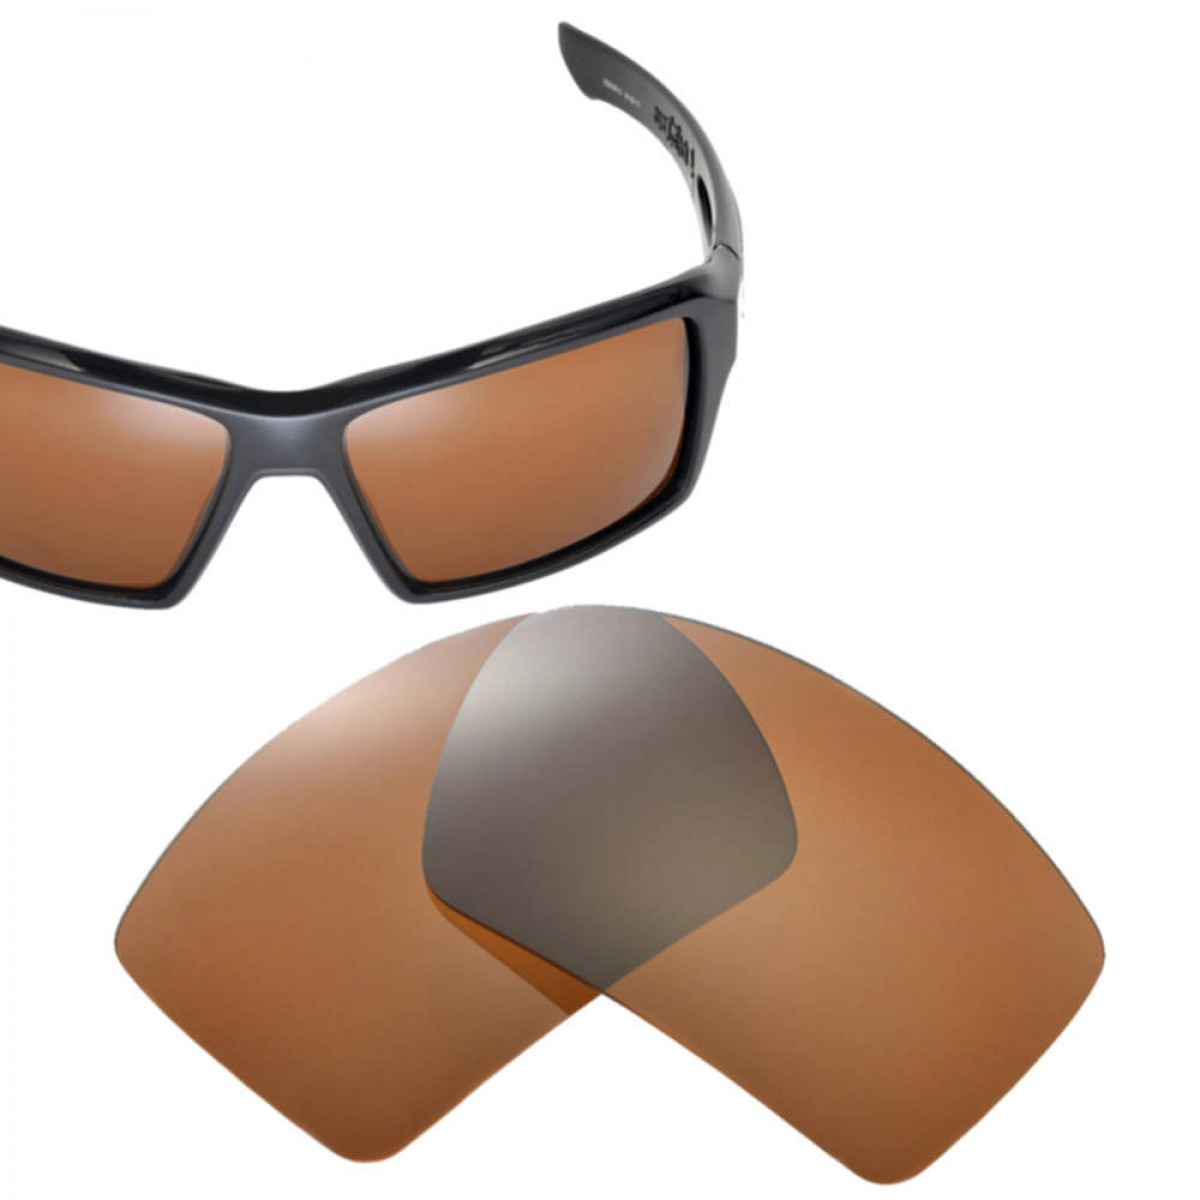 62caa3a318ebe Cofery Lenses Store Cofery Replacement Lenses for Oakley Eyepatch 2  Sunglasses